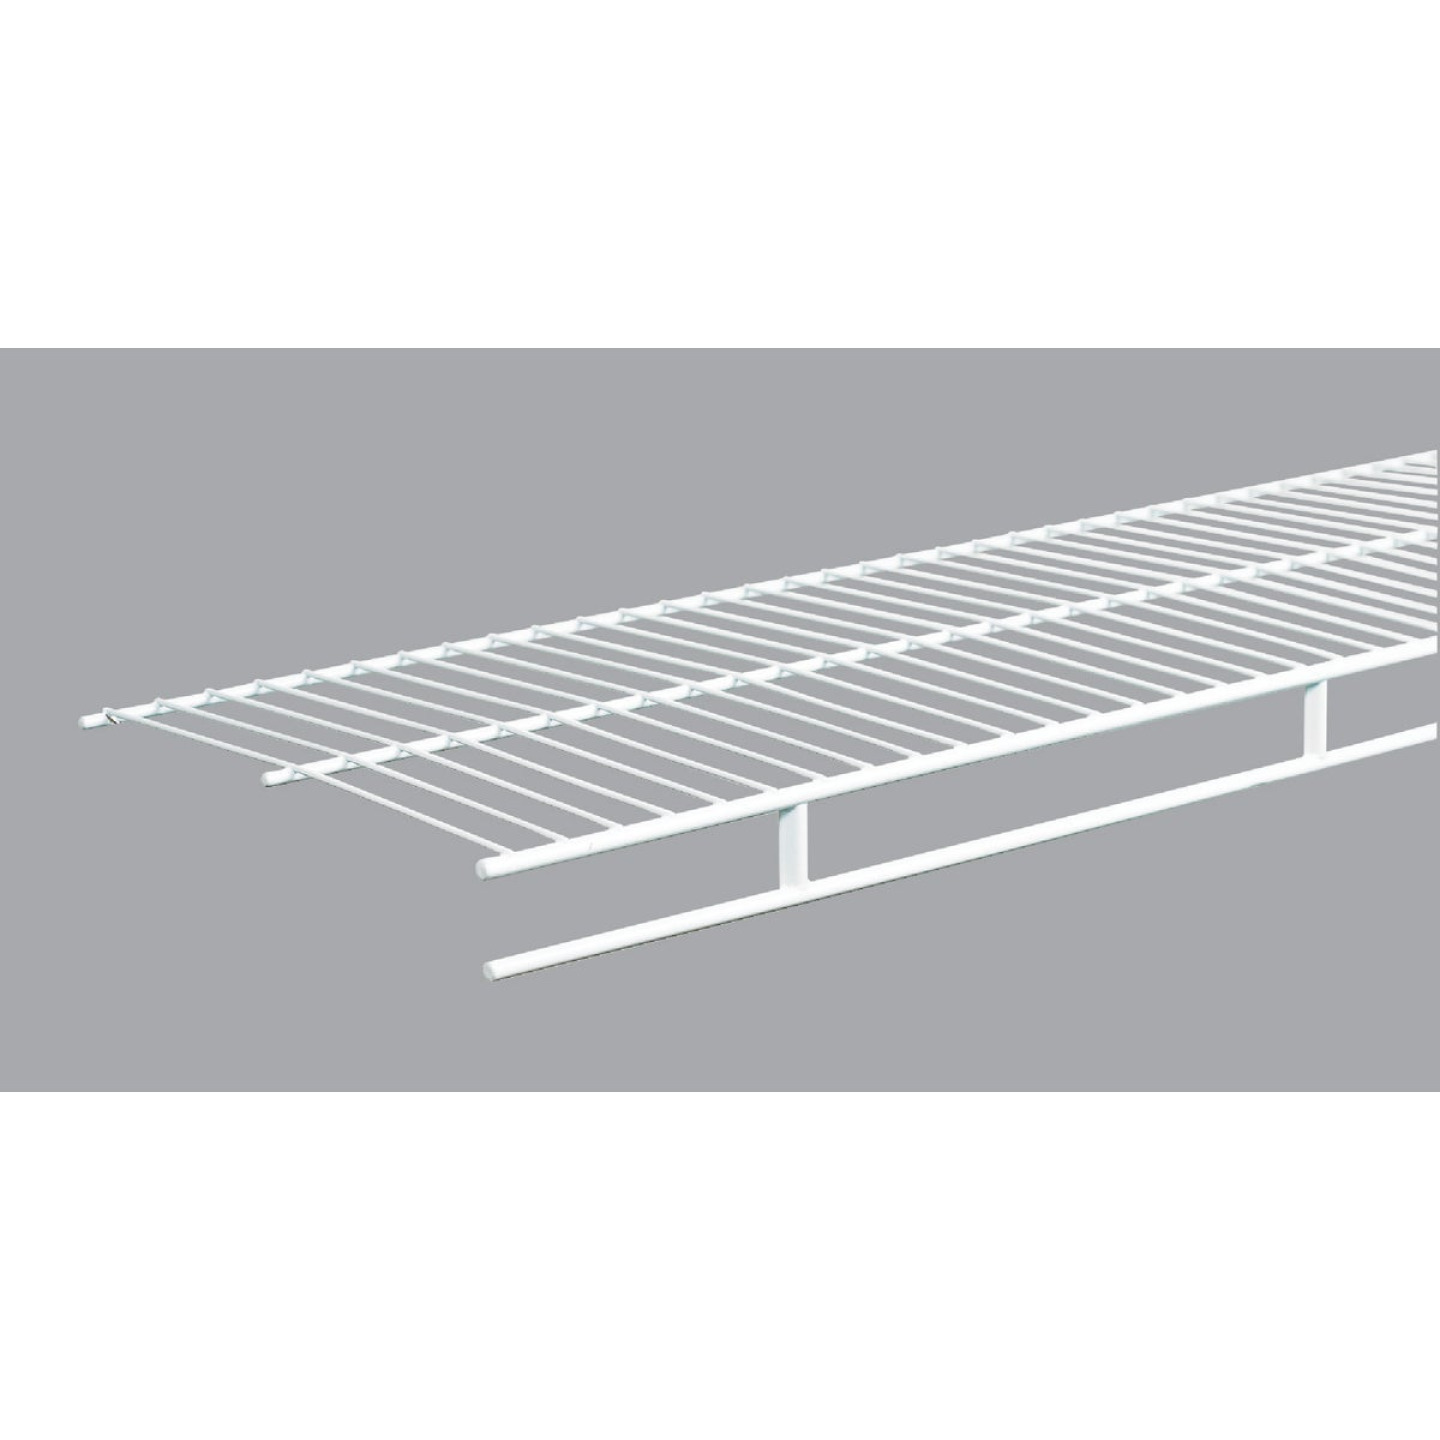 ClosetMaid 6 Ft. W. x 12 In. D. Ventilated Wire Shelf & Rod, White Image 1